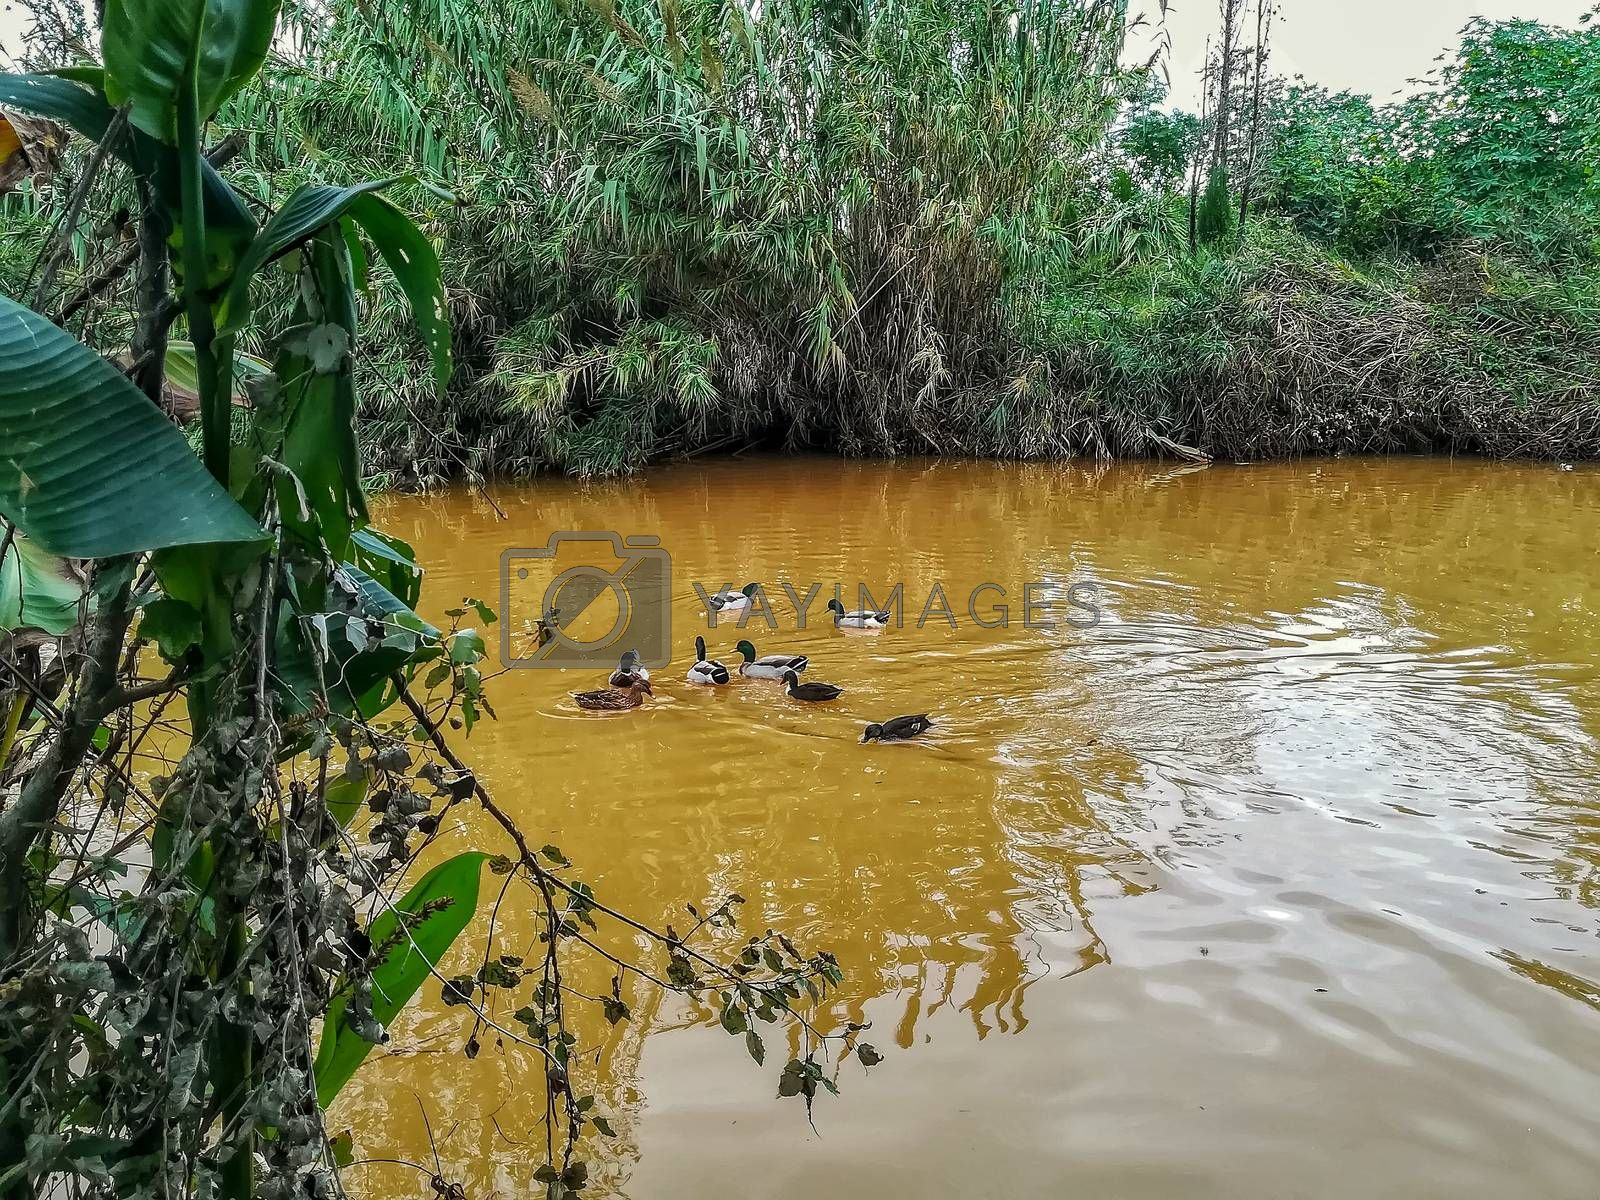 Ducks swimming in the river of the natural setting of Clot with sediment laden water after heavy rains